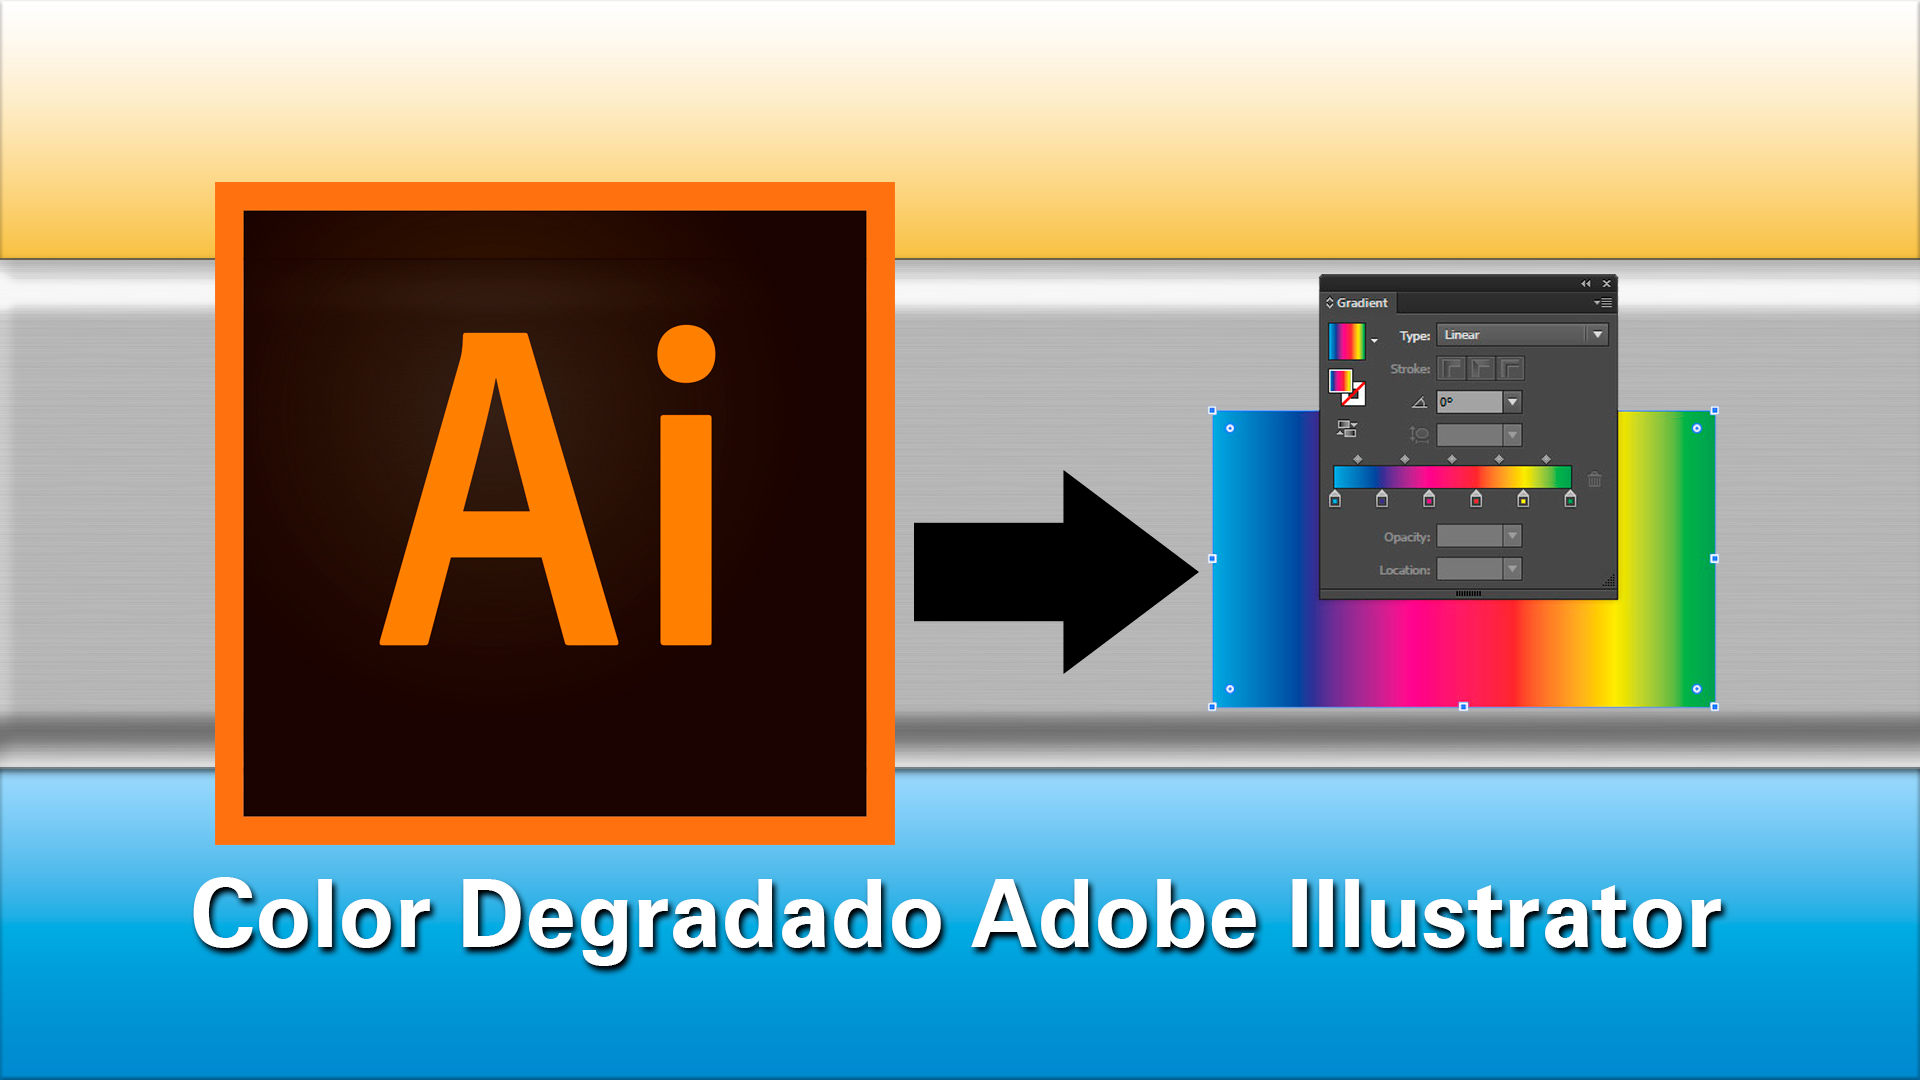 Como usar el color degradado en Adobe Illustrator